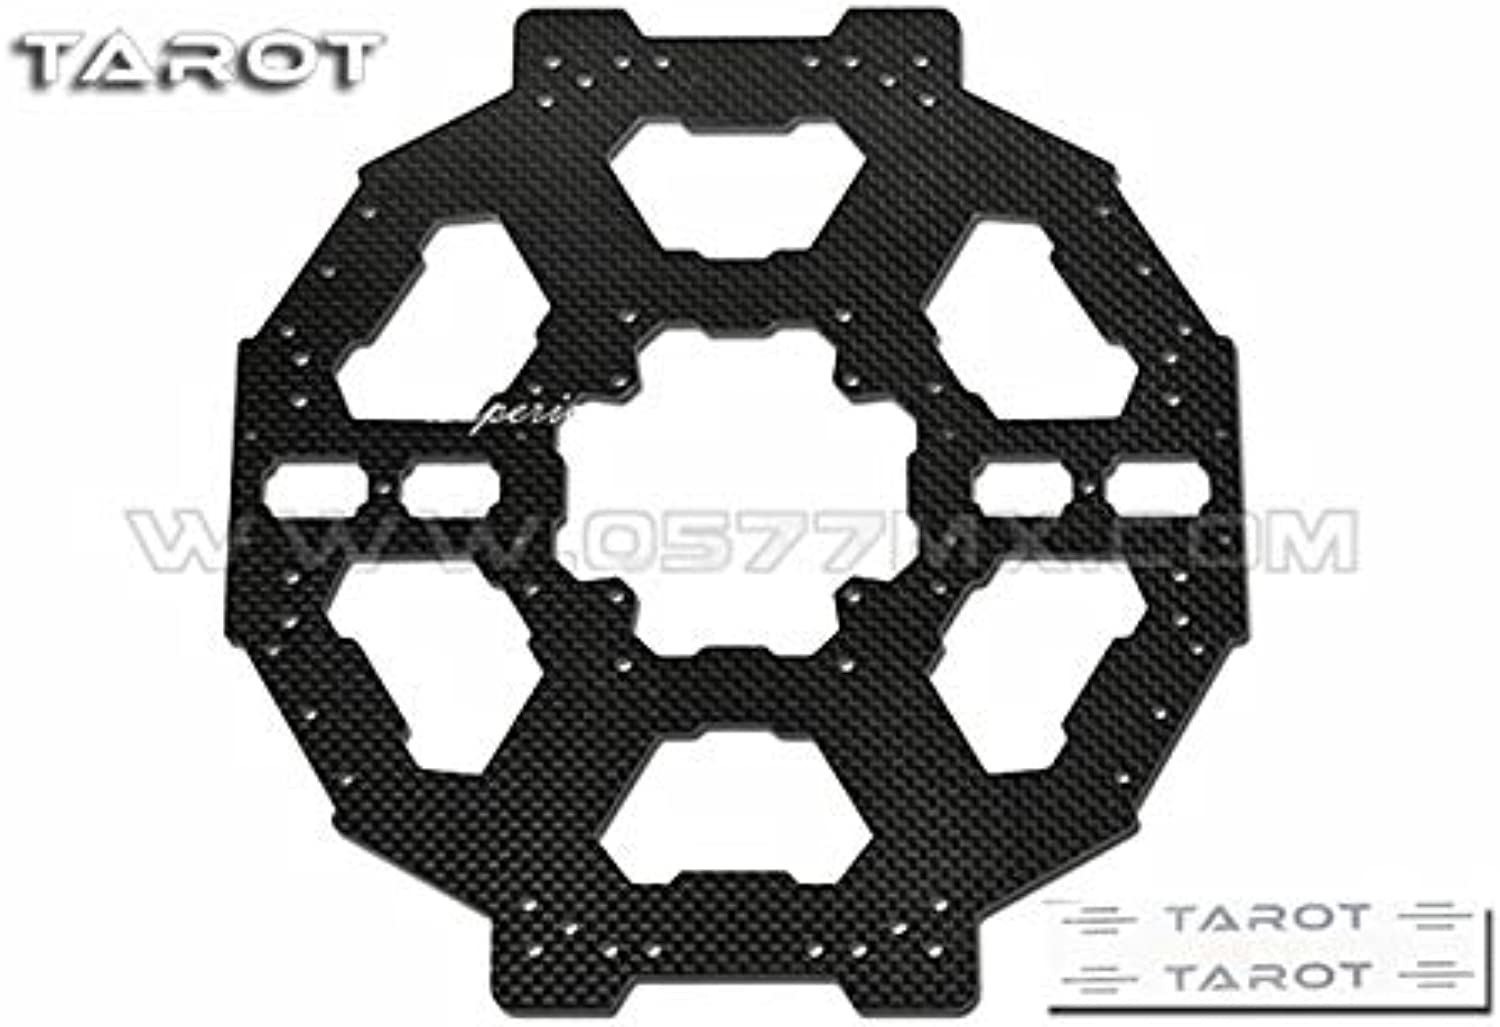 Generic Tared TL68B03 FY680 Foldable Hexcopter Carbon Fiber Main Plate Adapter Plate GSX